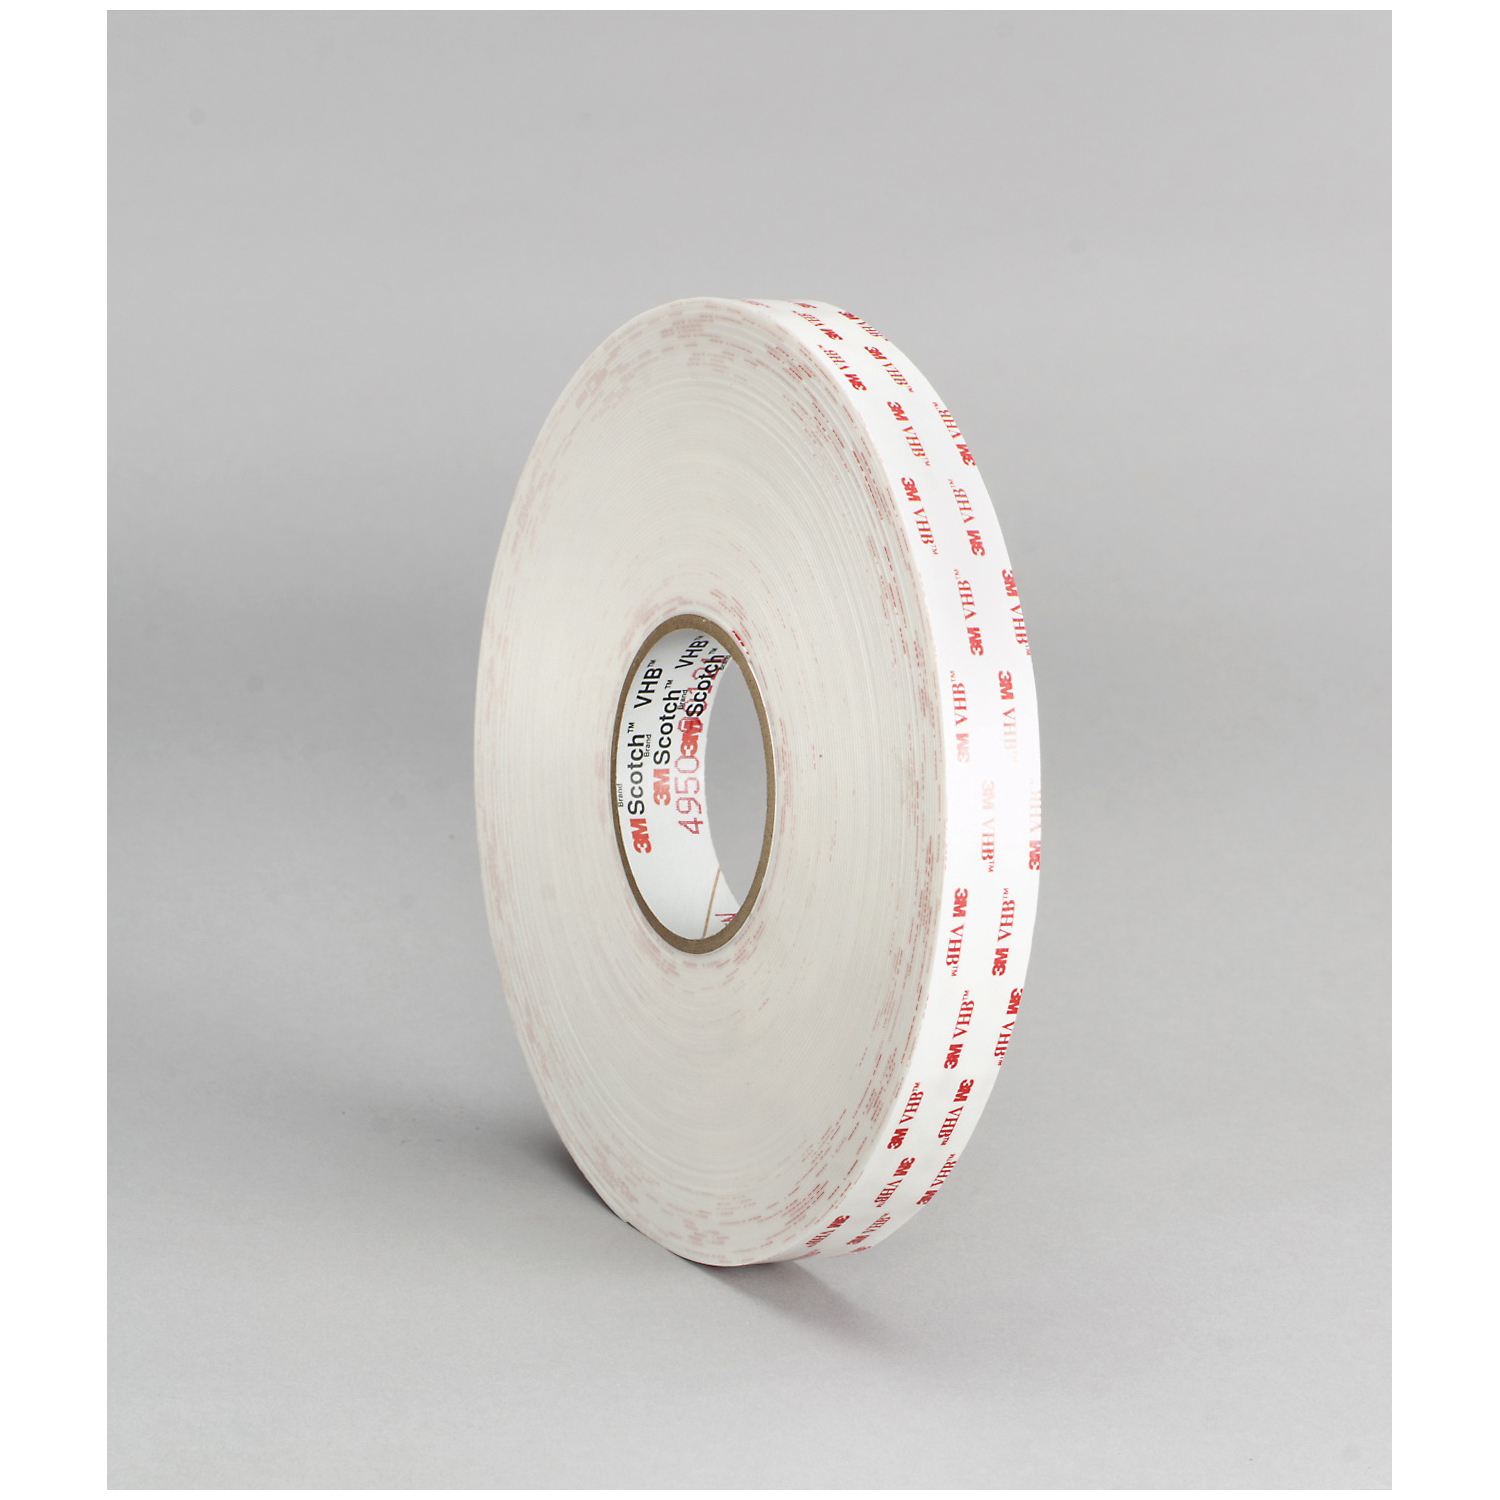 3M™ VHB™ 021200-64614 Pressure Sensitive Double Sided Bonding Tape, 72 yd L x 3/4 in W, 0.025 in THK, General Purpose Acrylic Adhesive, Acrylic Foam Backing, White